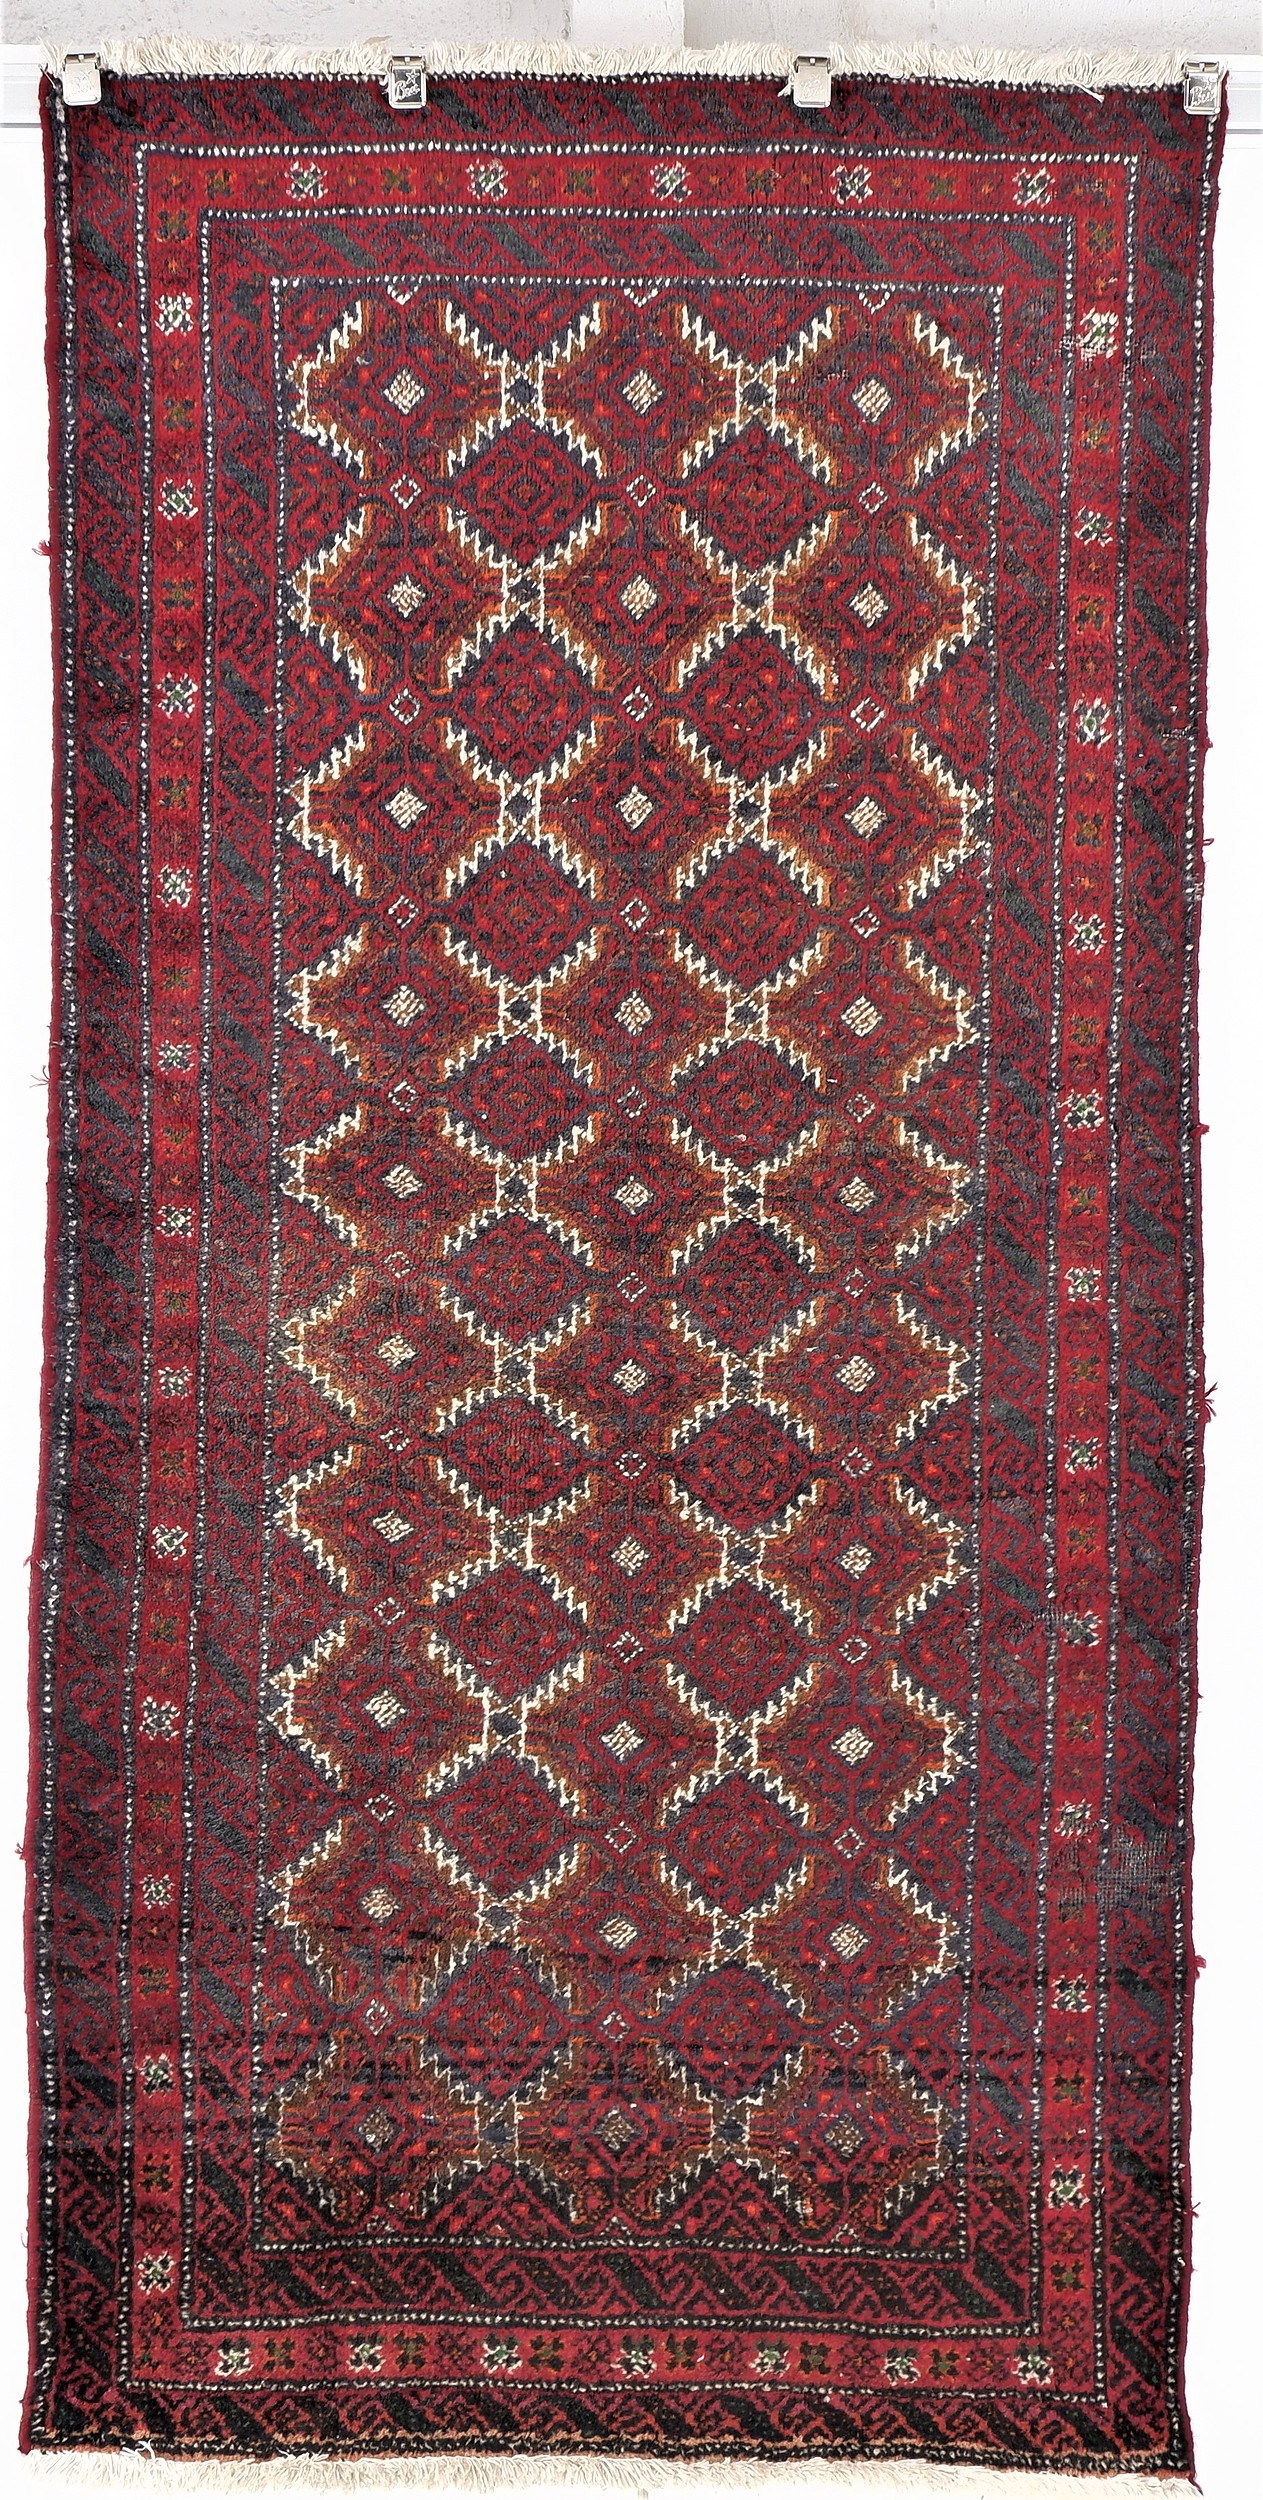 'Vintage Persian Baluchi Hand Knotted Wool Rug '